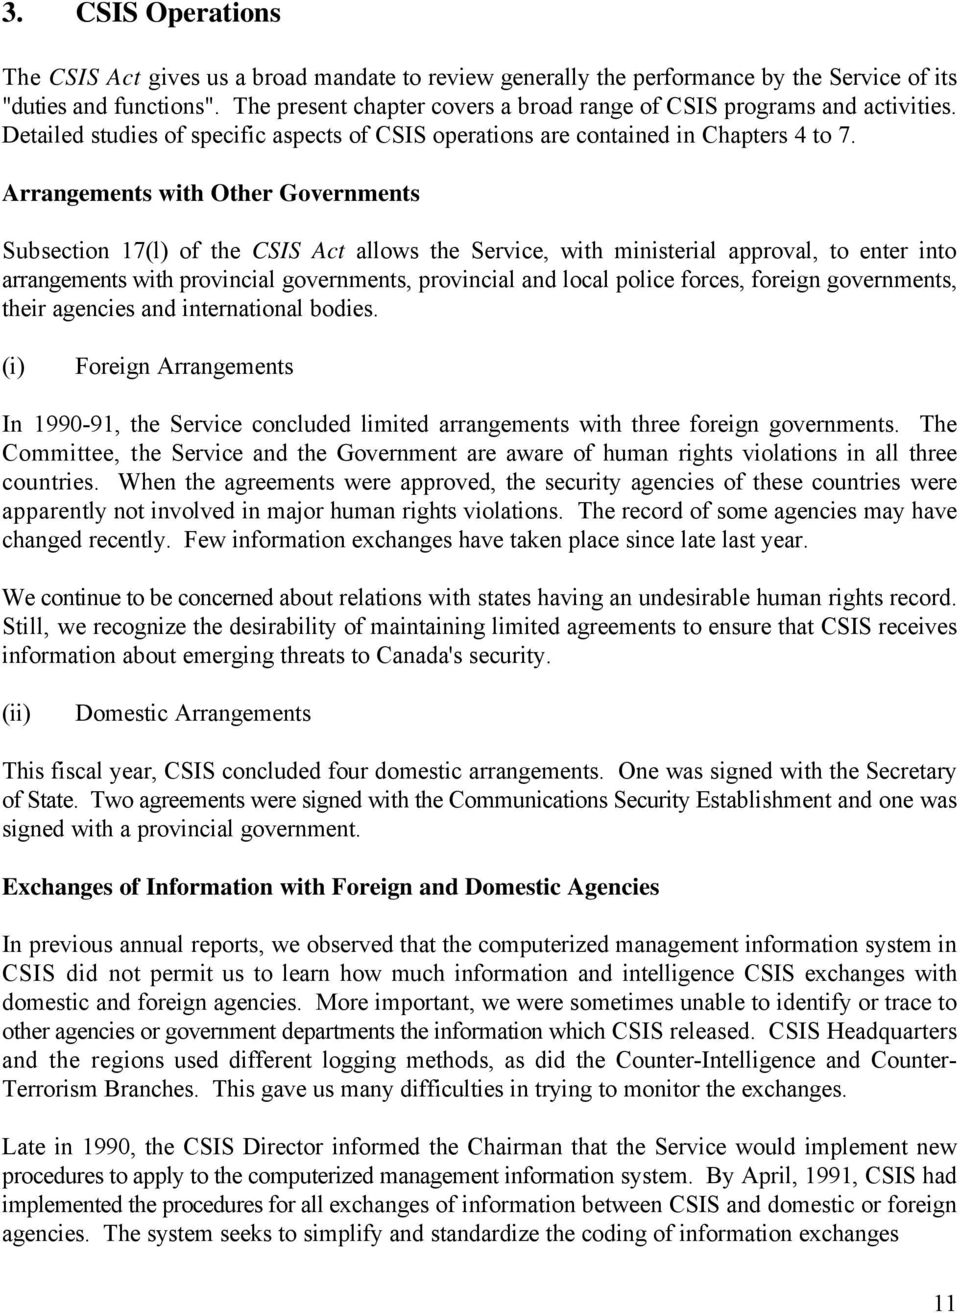 Arrangements with Other Governments Subsection 17(l) of the CSIS Act allows the Service, with ministerial approval, to enter into arrangements with provincial governments, provincial and local police